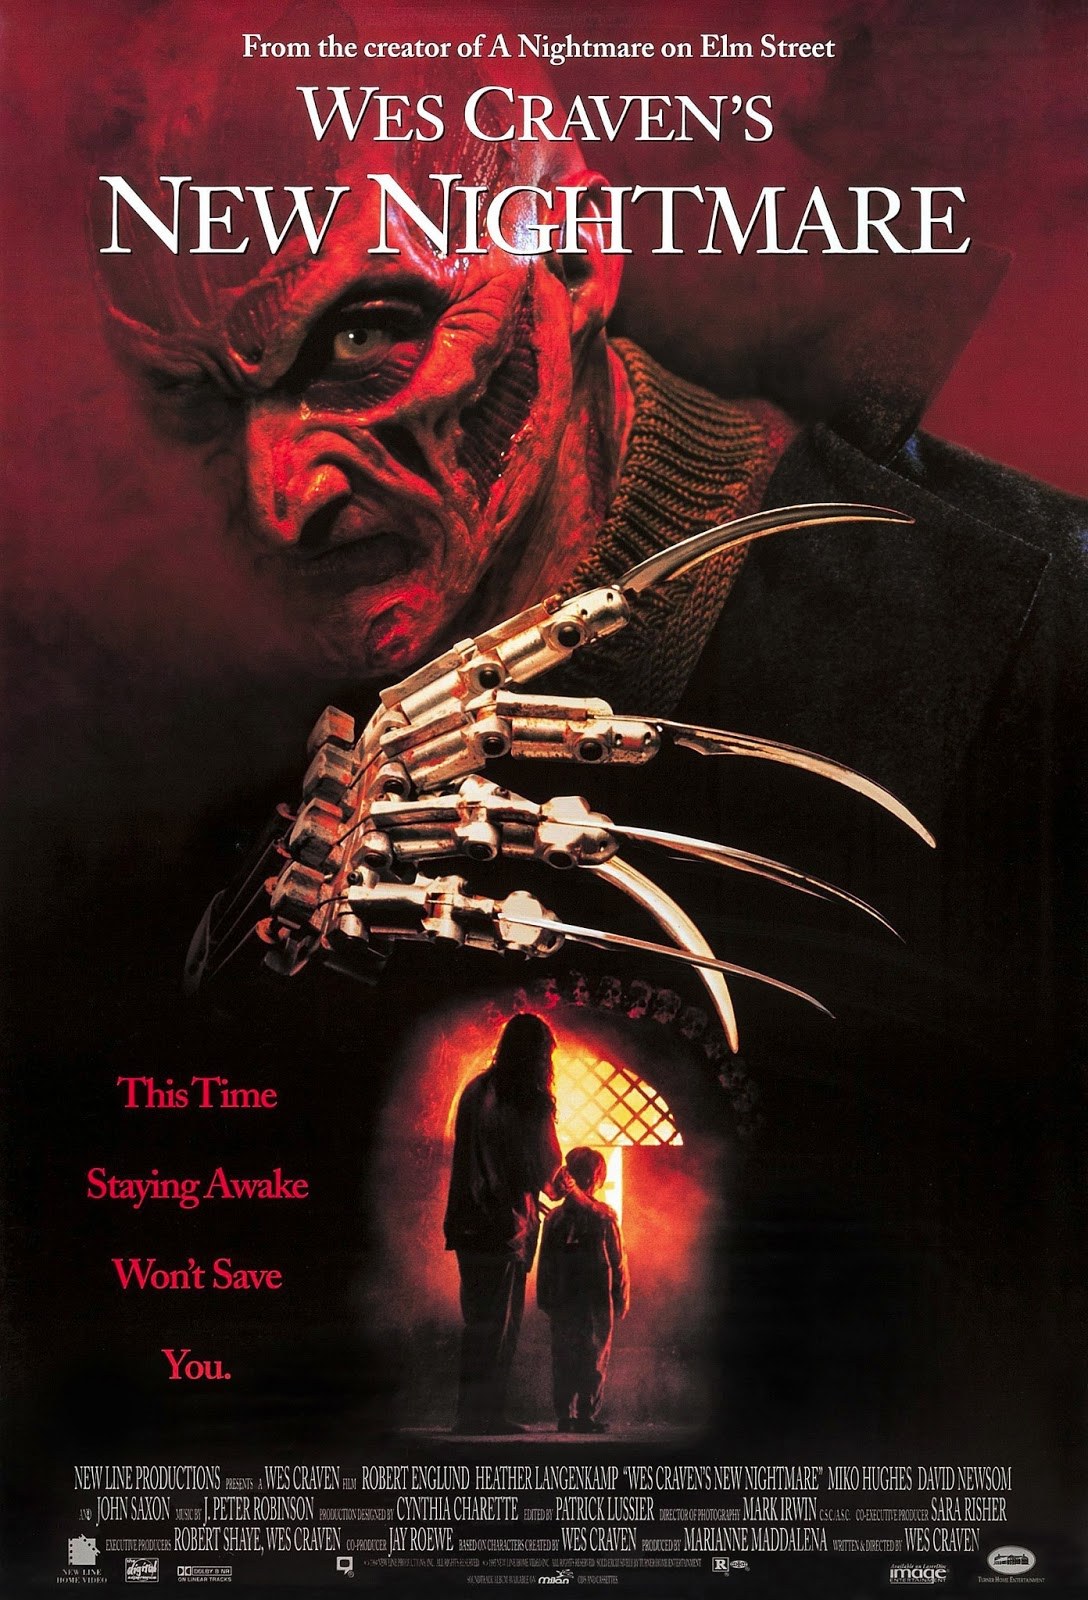 a review of the american horror film series nightmare on elm street by wes craven Directed by wes craven with heather langenkamp, johnny depp new nightmare a nightmare on elm street 4: the dream master the evil dead scream dive deep into everything about horror films, superhero movies and tv series, imdb picks, and more scary good superheroes.